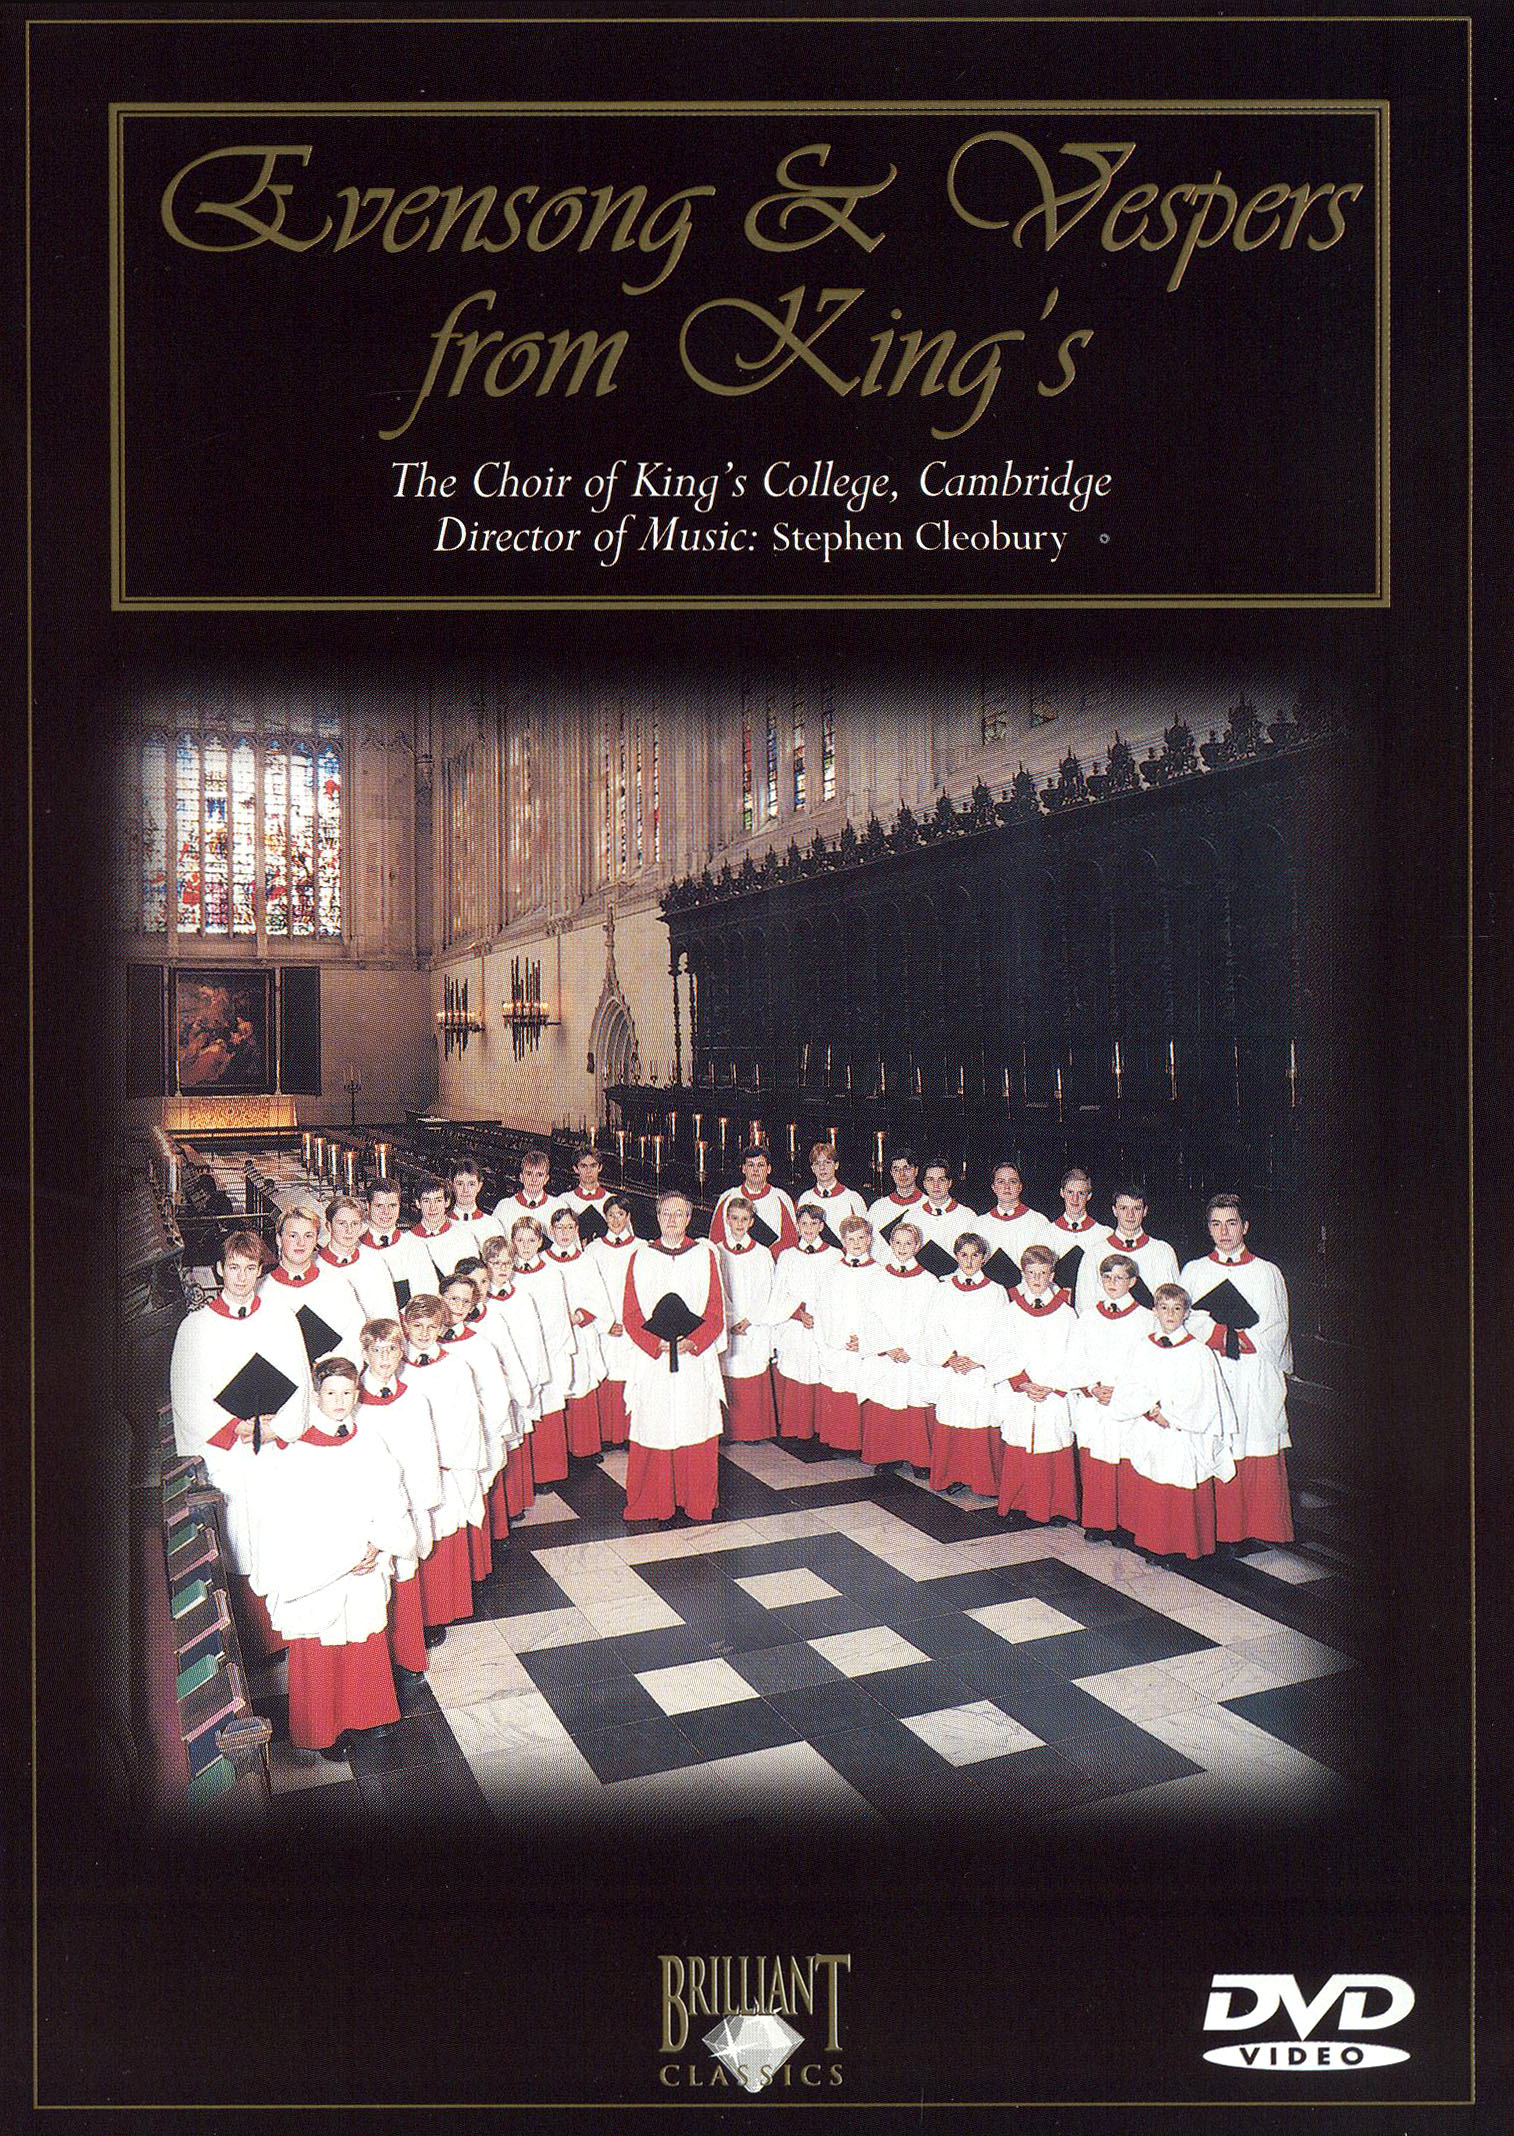 Evensong & Vespers from King's